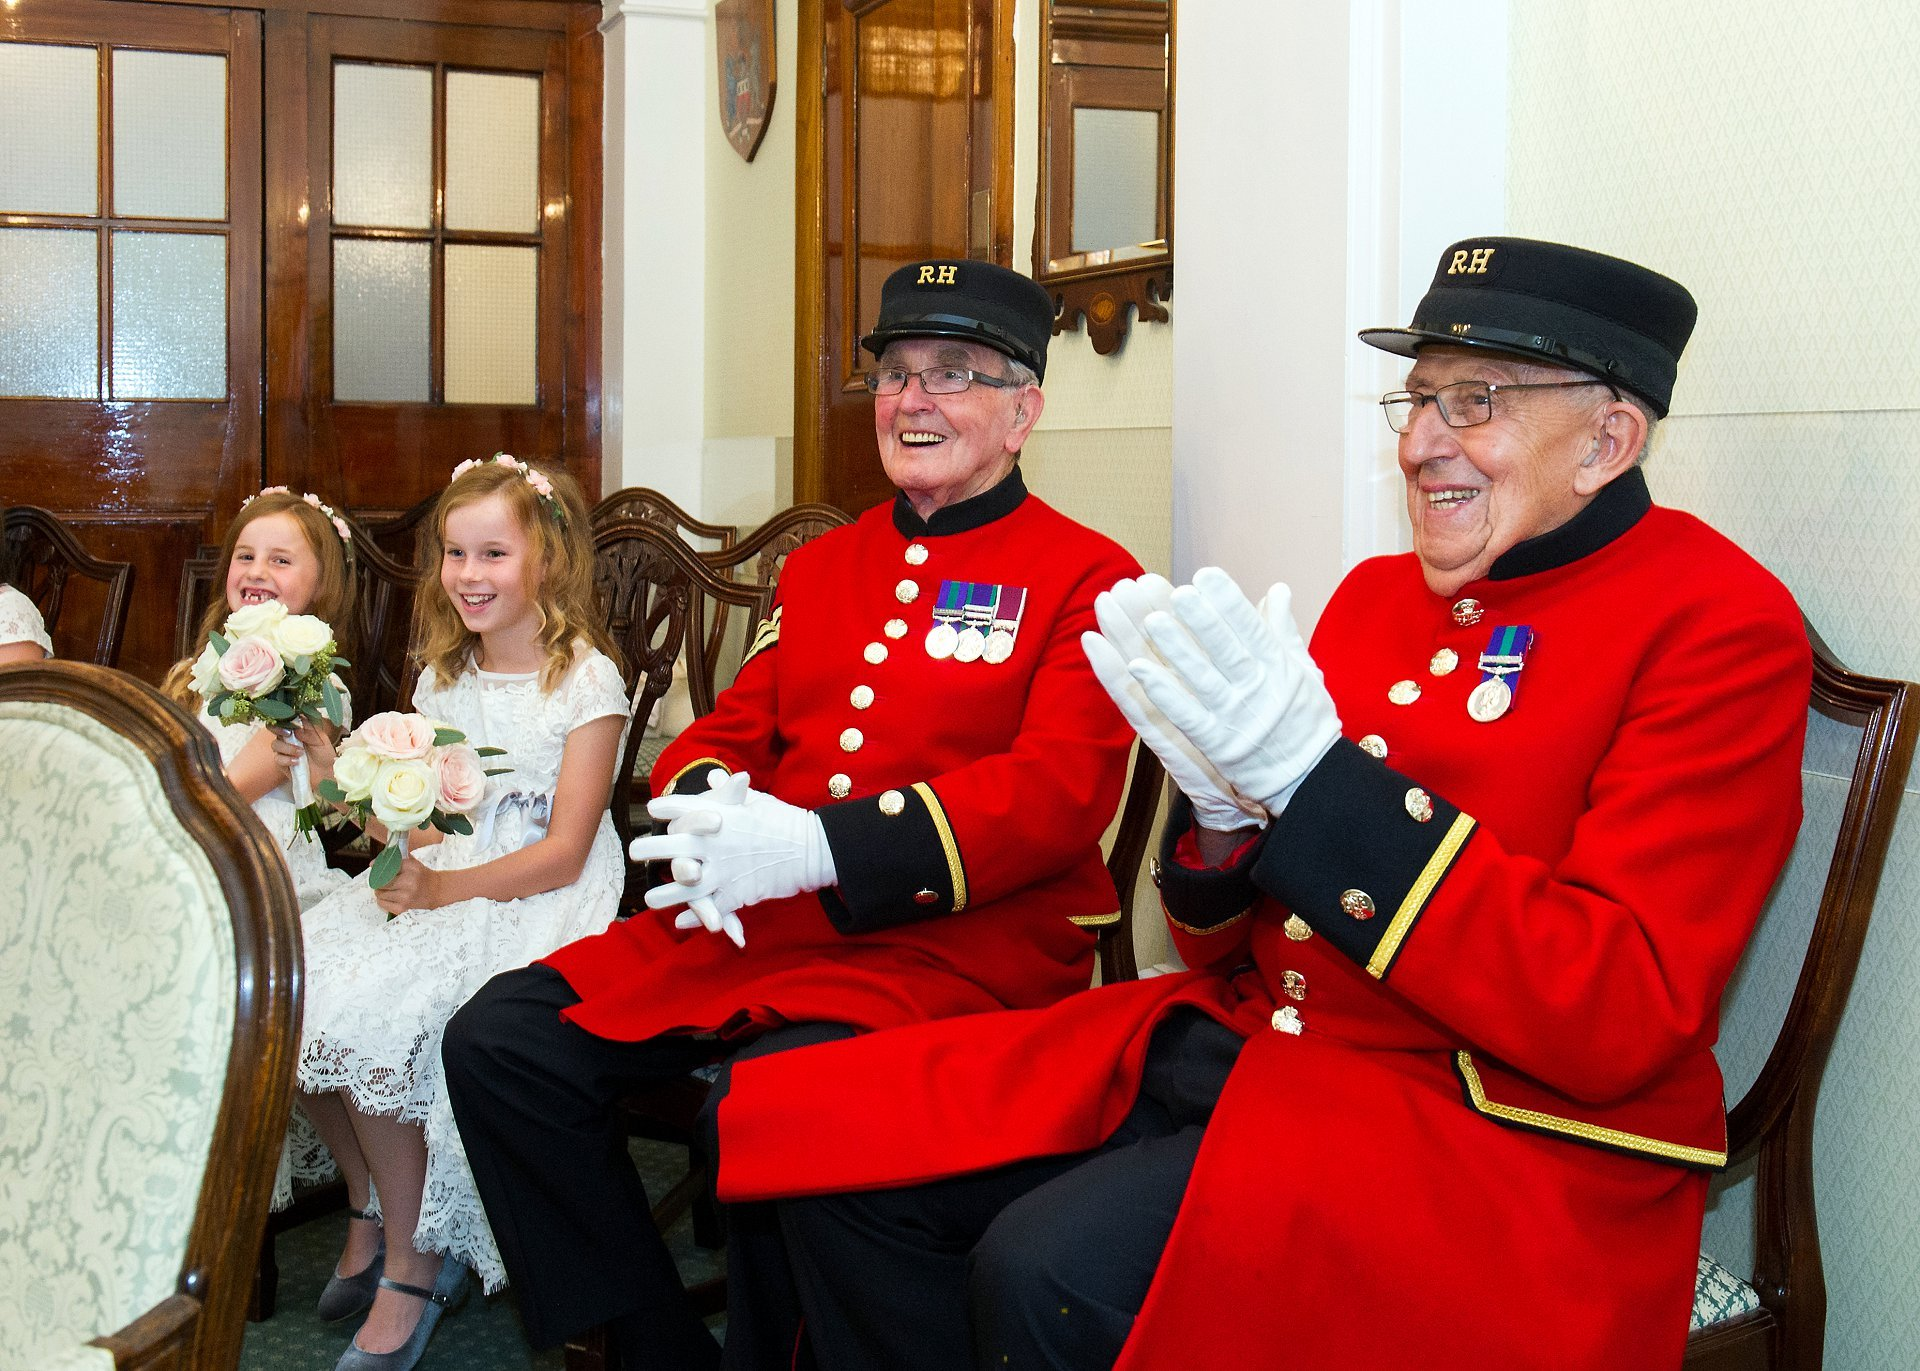 Two Chelsea Pensioners clap at the end of this Chelsea civil marriage